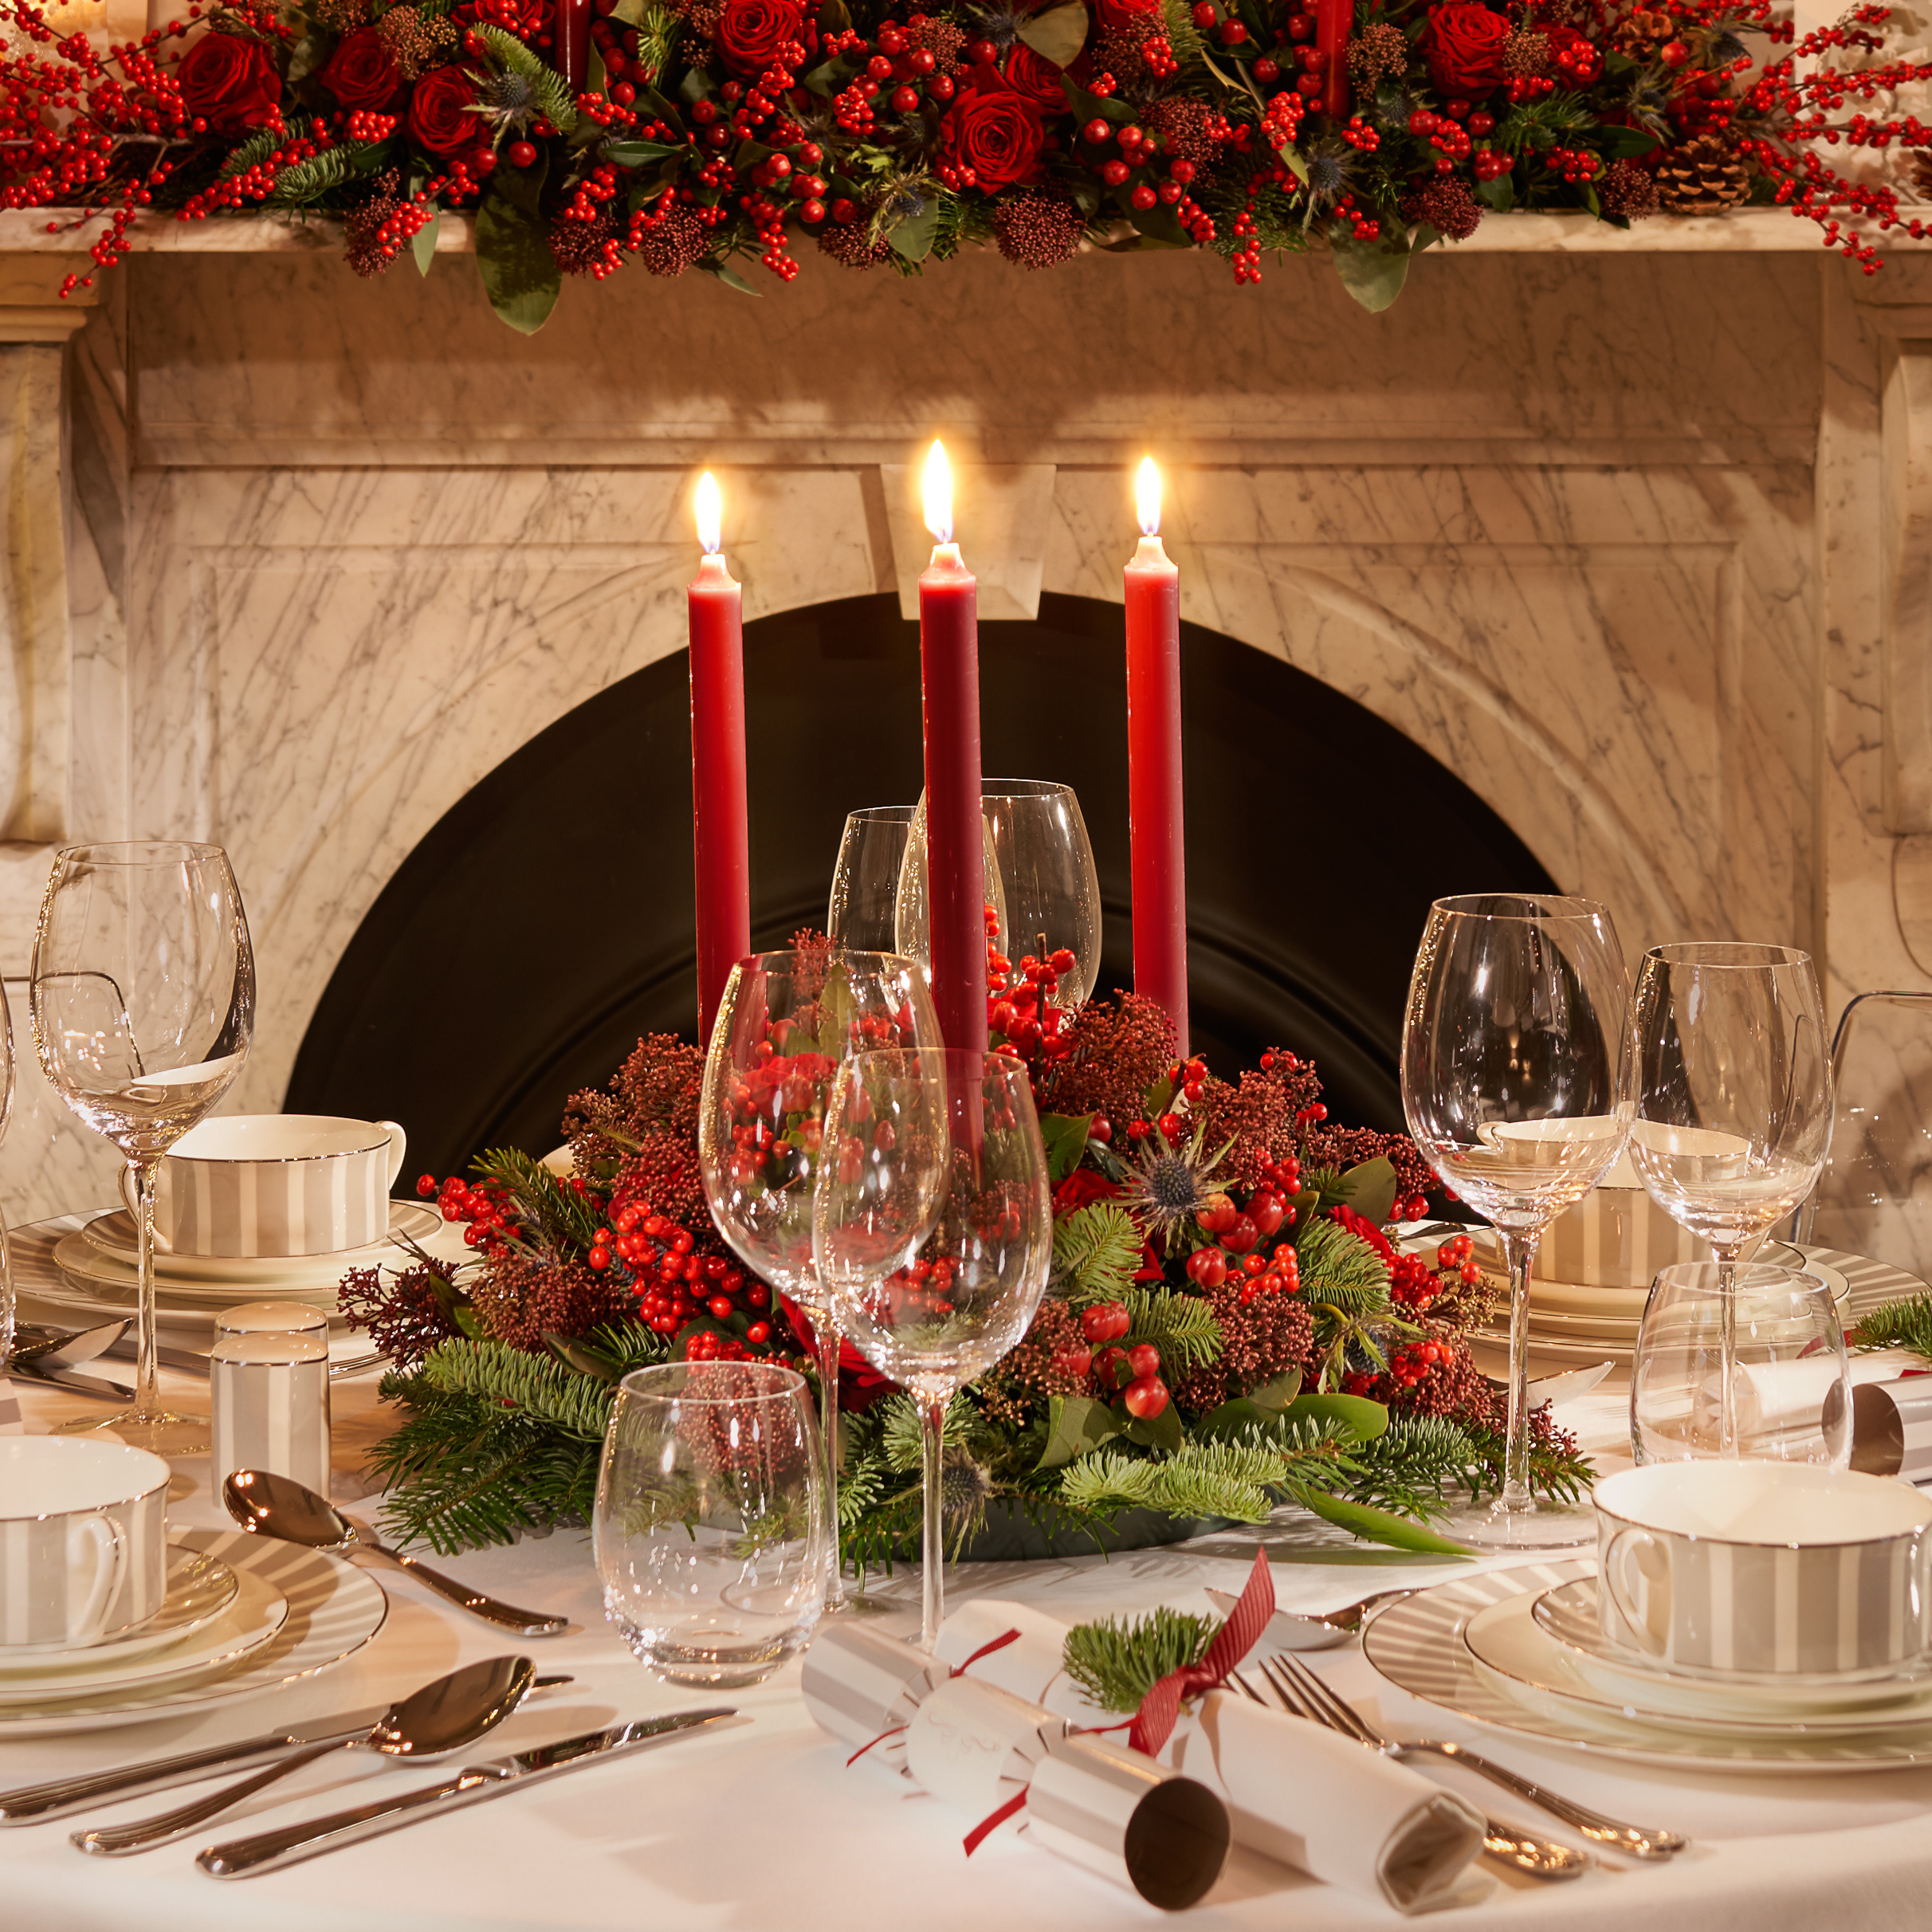 Dining Table Setting Red Candles Close Up 2400px.jpg